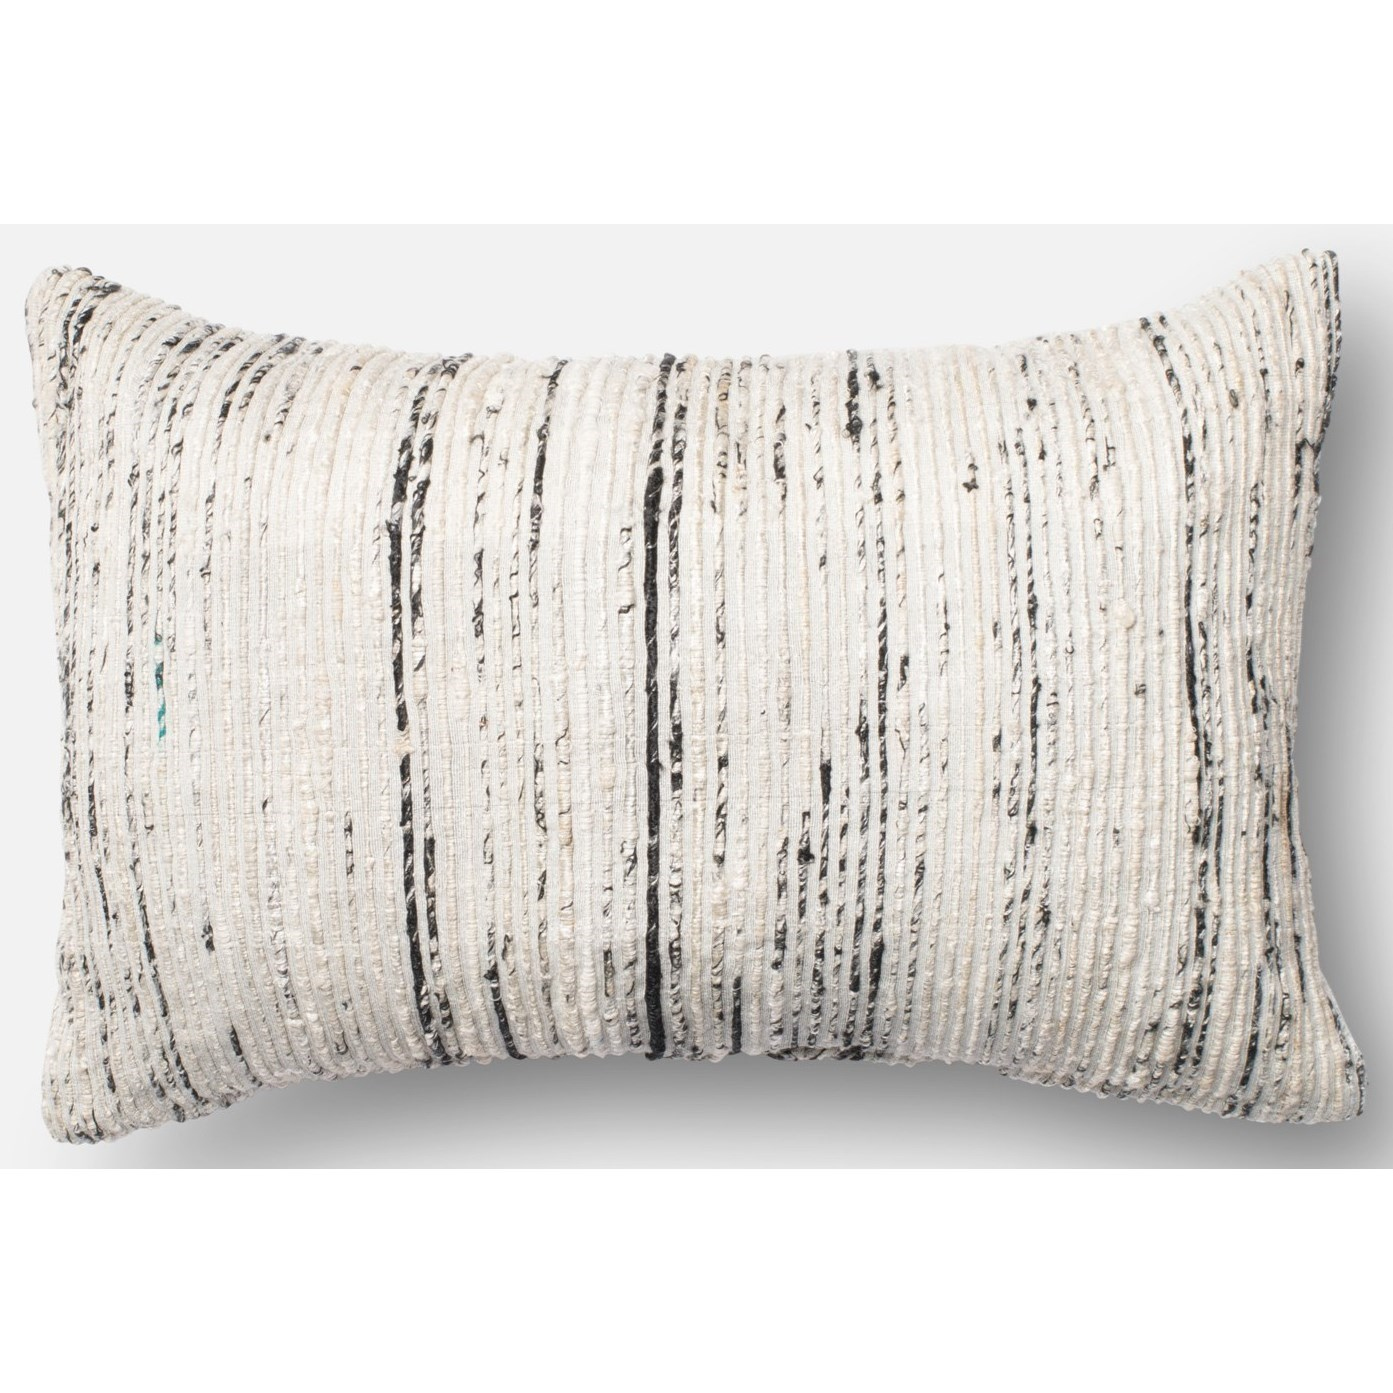 "Dhurri Style 13"" X 21"" Down Pillow by Loloi Rugs at Sprintz Furniture"